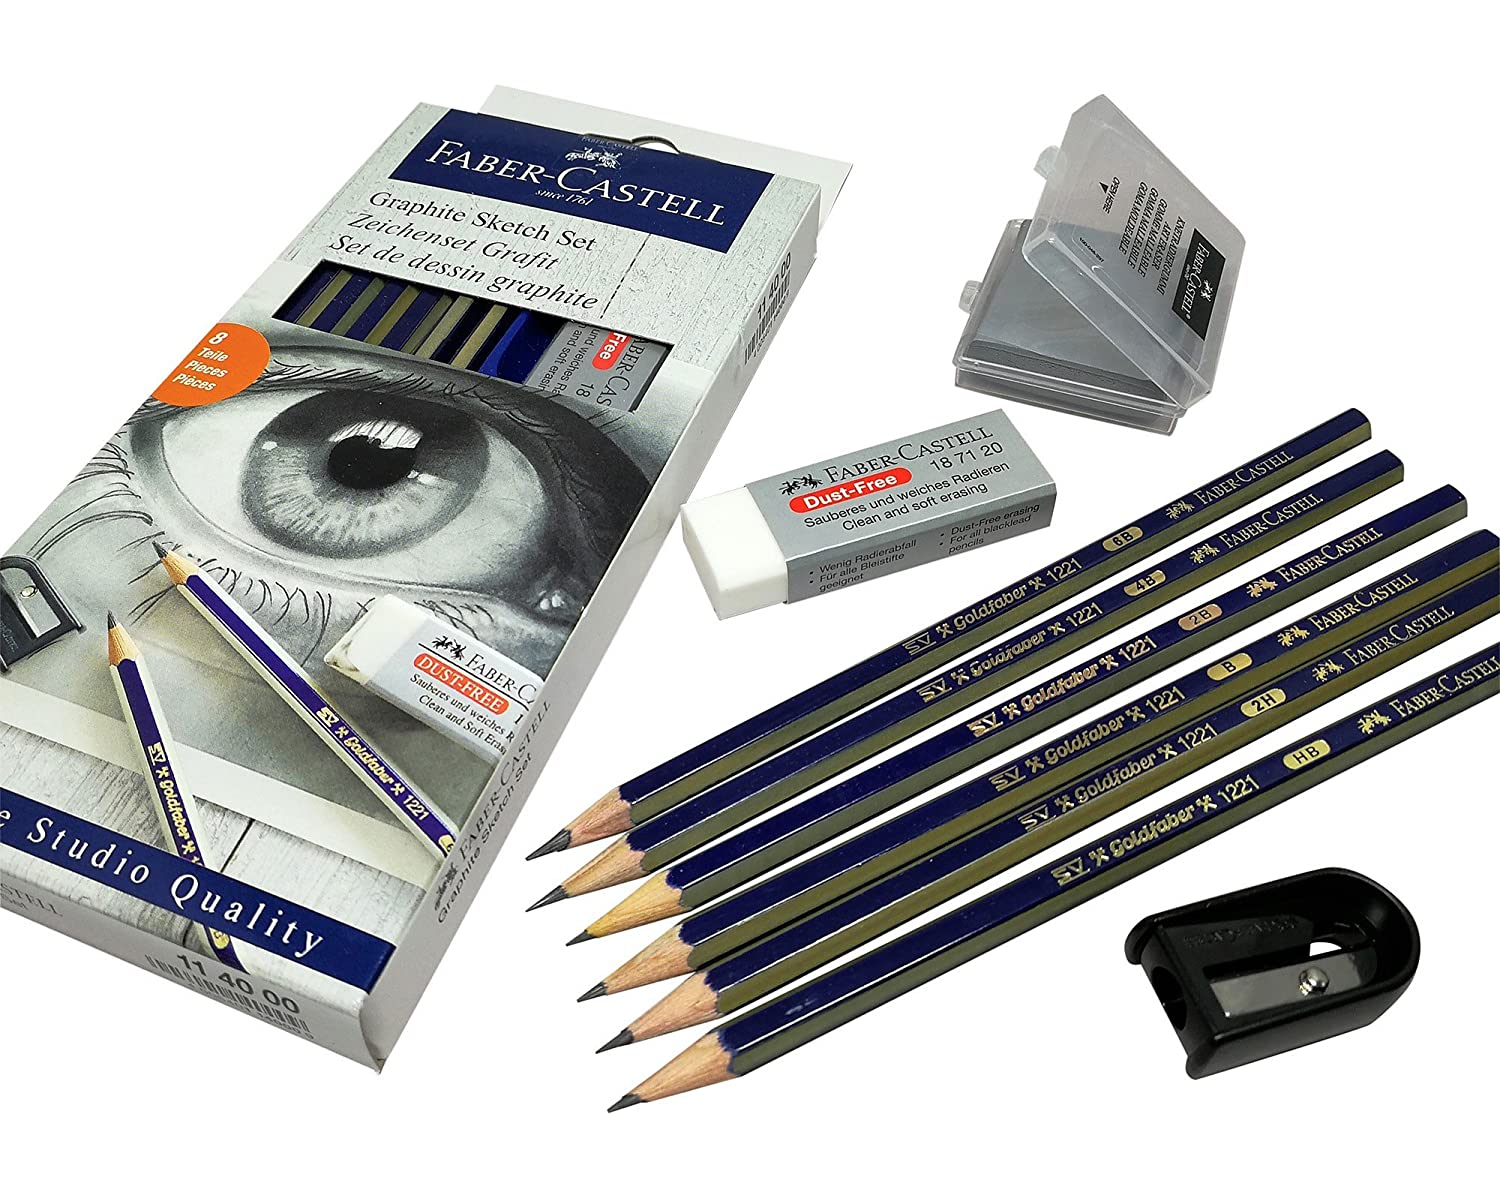 Amazon com faber castell pencils 2b 2h hb 4b 6b b graphite art pencils set with eraser kneaded eraser pencil sharpener for sketch drawing and